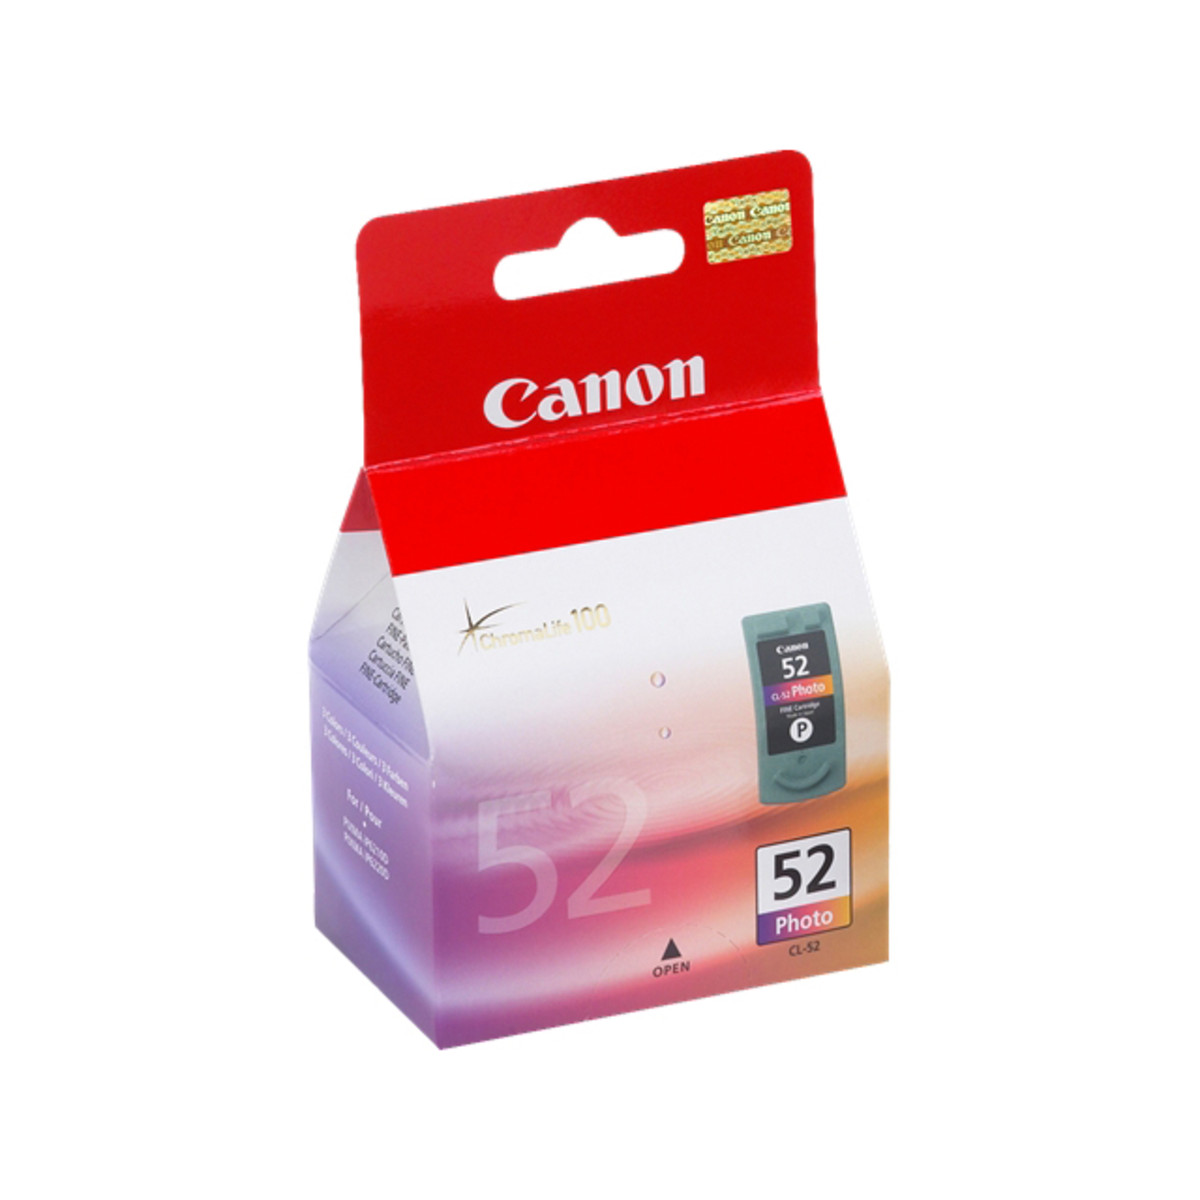 Canon CL-52 FINE Photo Ink Cartridge